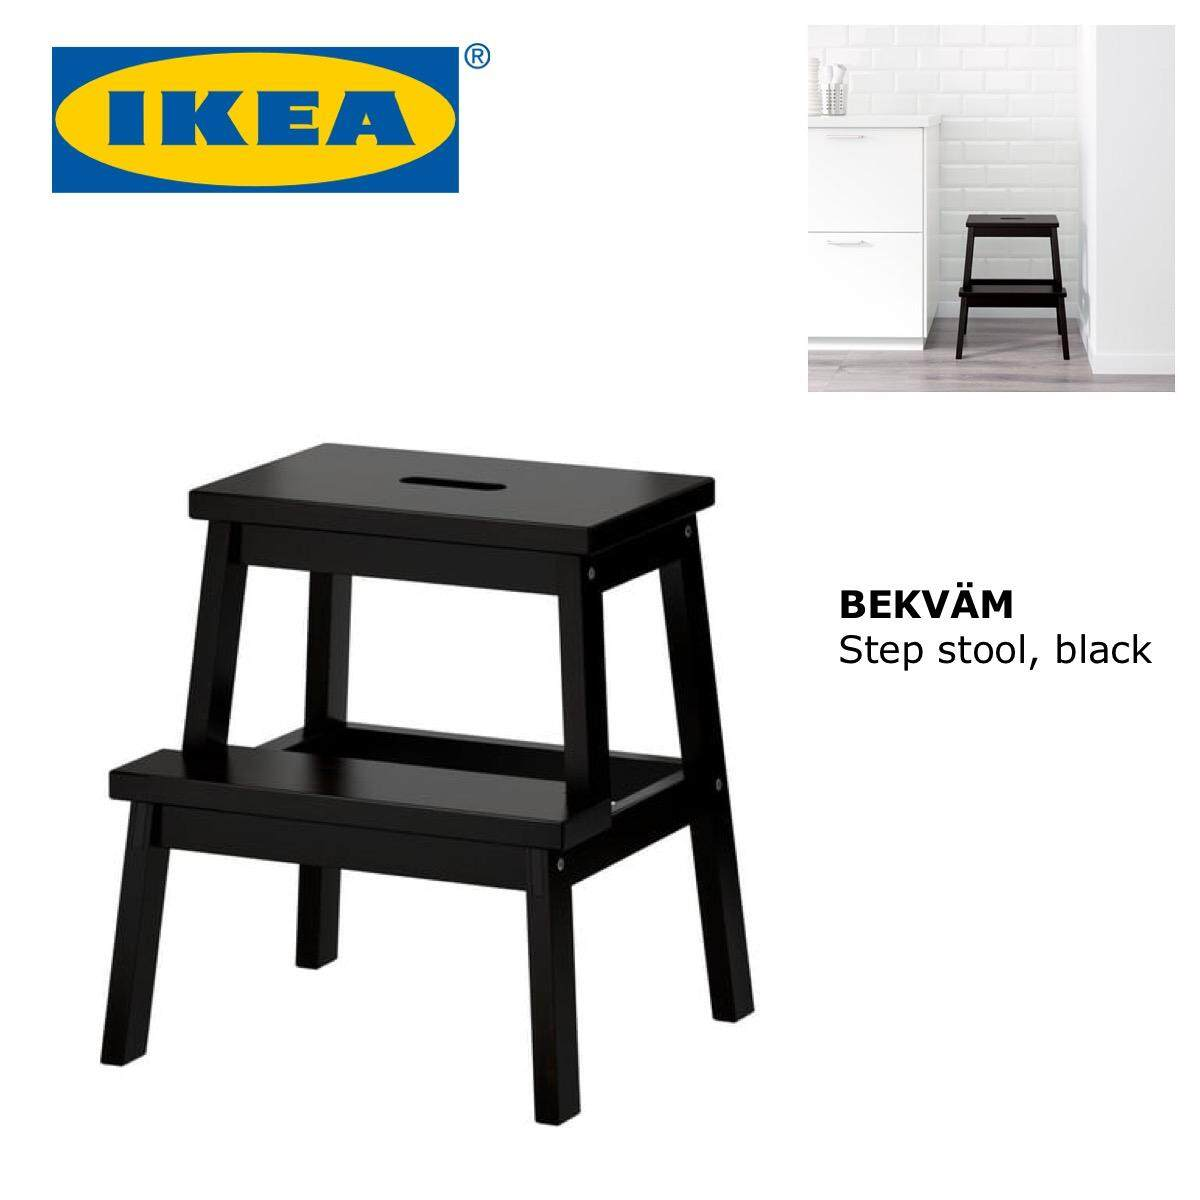 Strange Ikea Bekvam Step Stool Chair Black Customarchery Wood Chair Design Ideas Customarcherynet